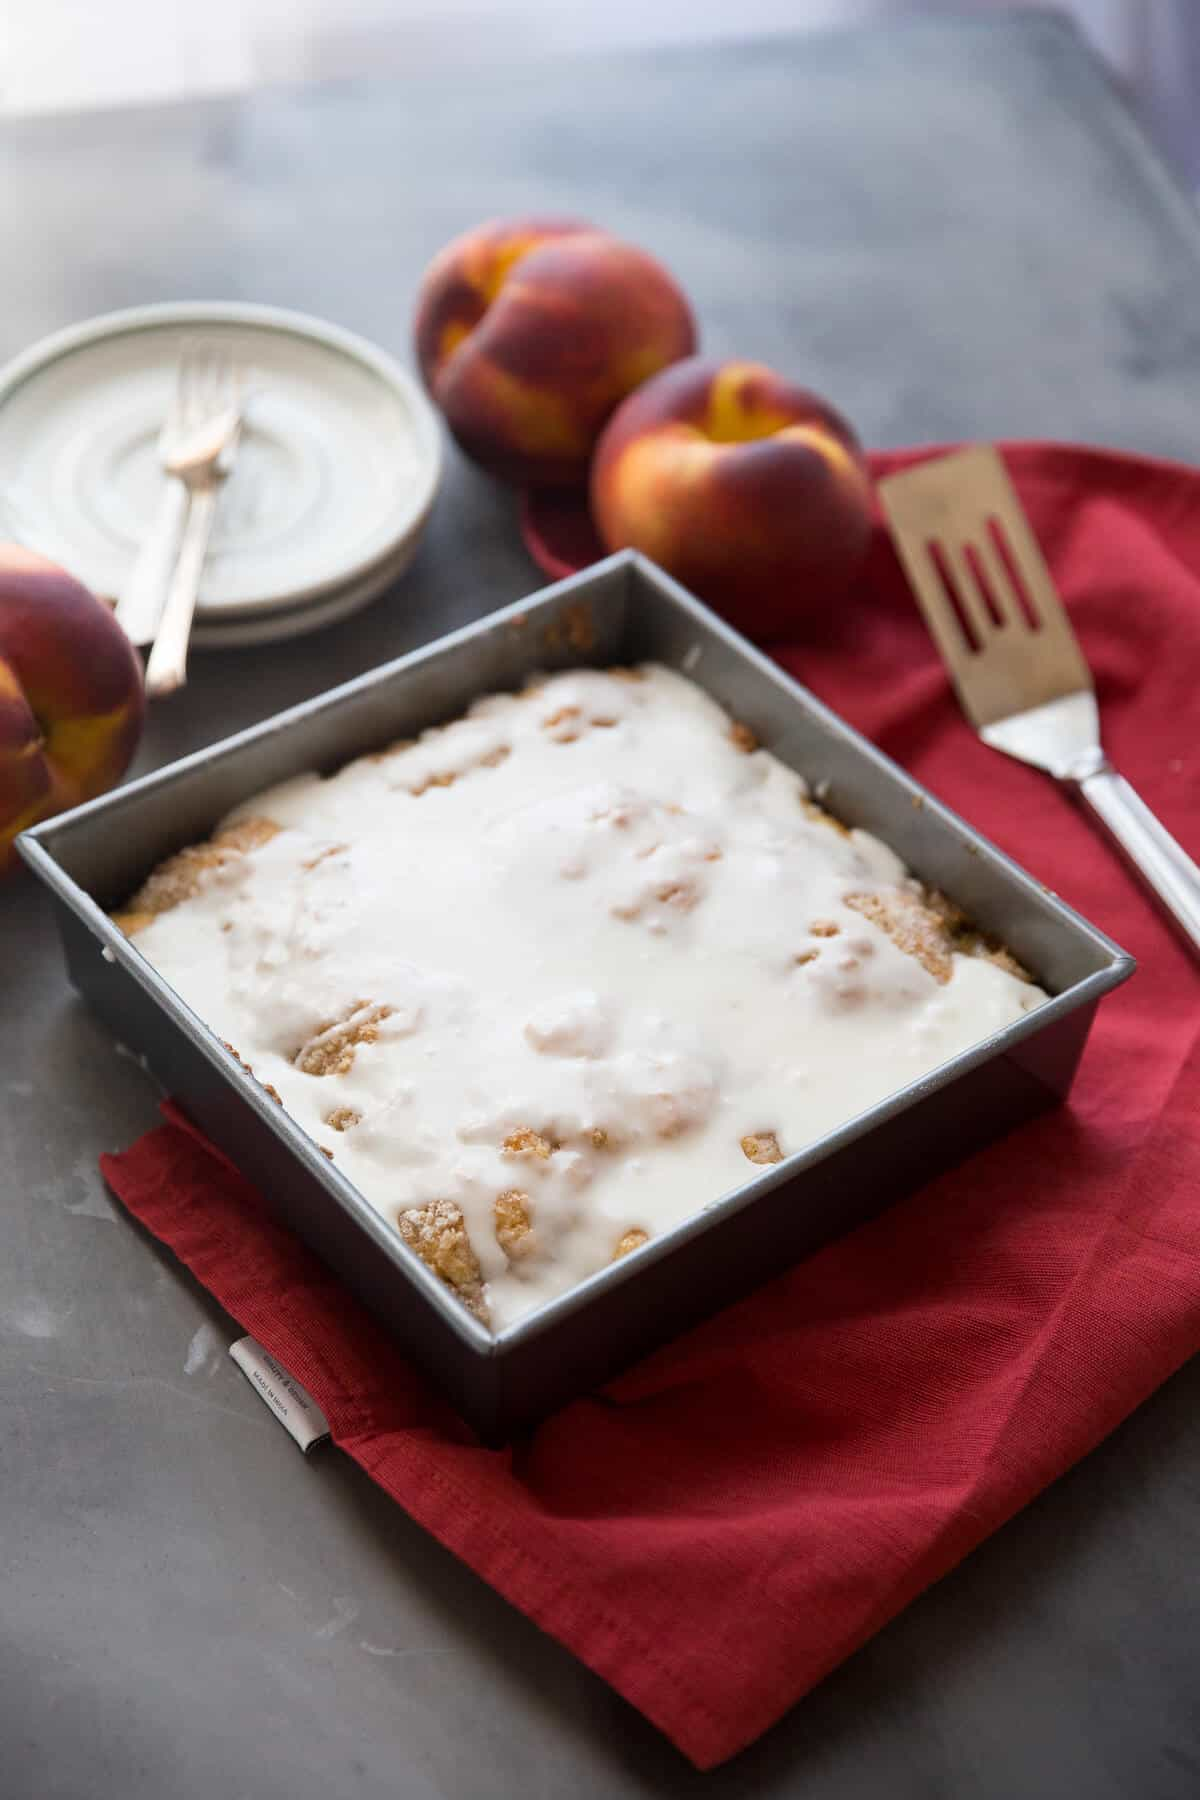 This peaches and cream coffee cake is sure to delight! Sweet peaches, a little cinnamon and a creamy glaze make a delicious treat!